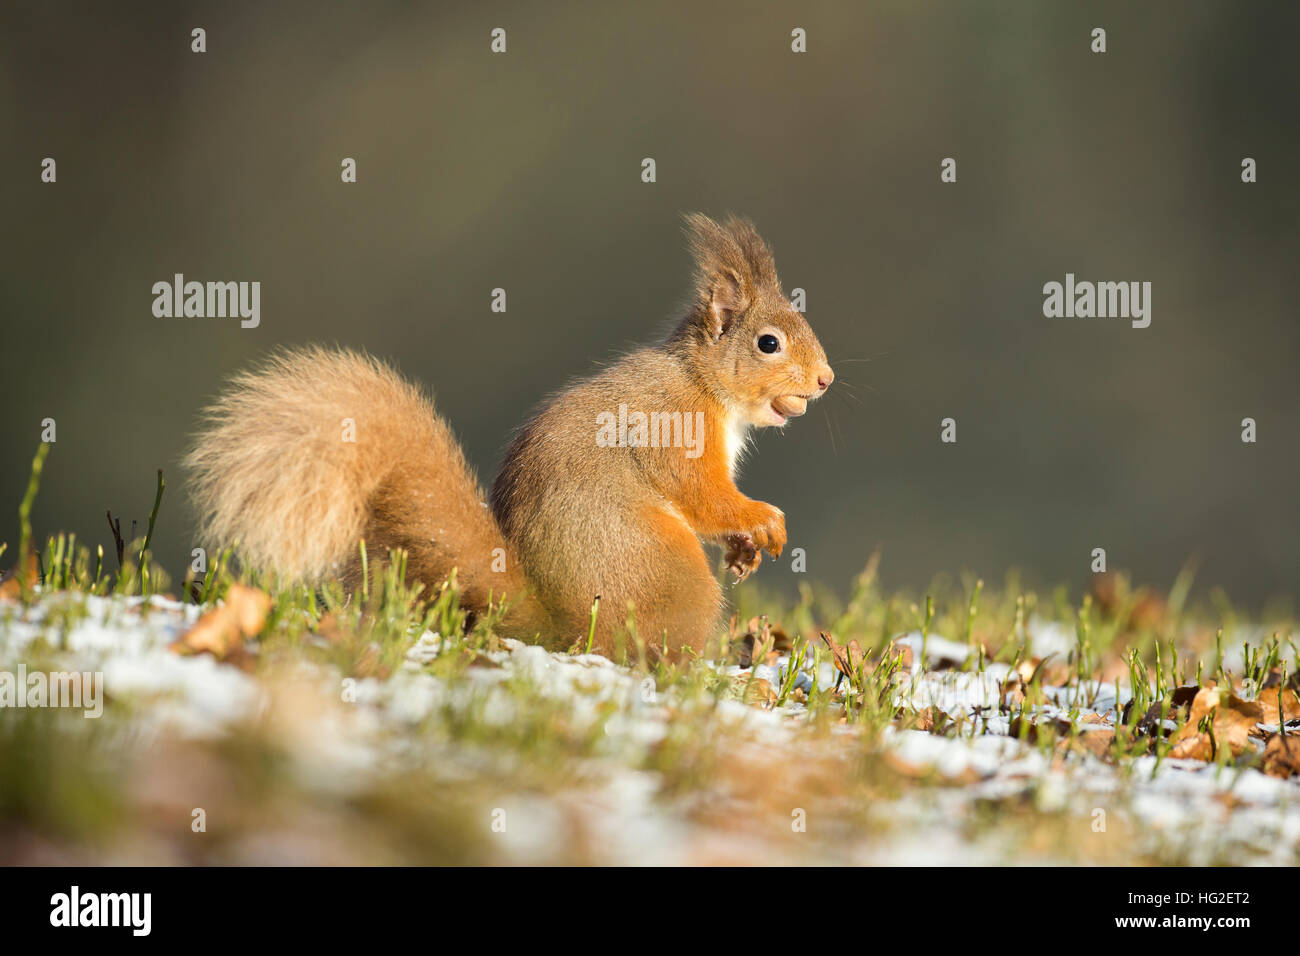 Red Squirrel (Sciurus vulgaris) searching for nuts during winter - Stock Image